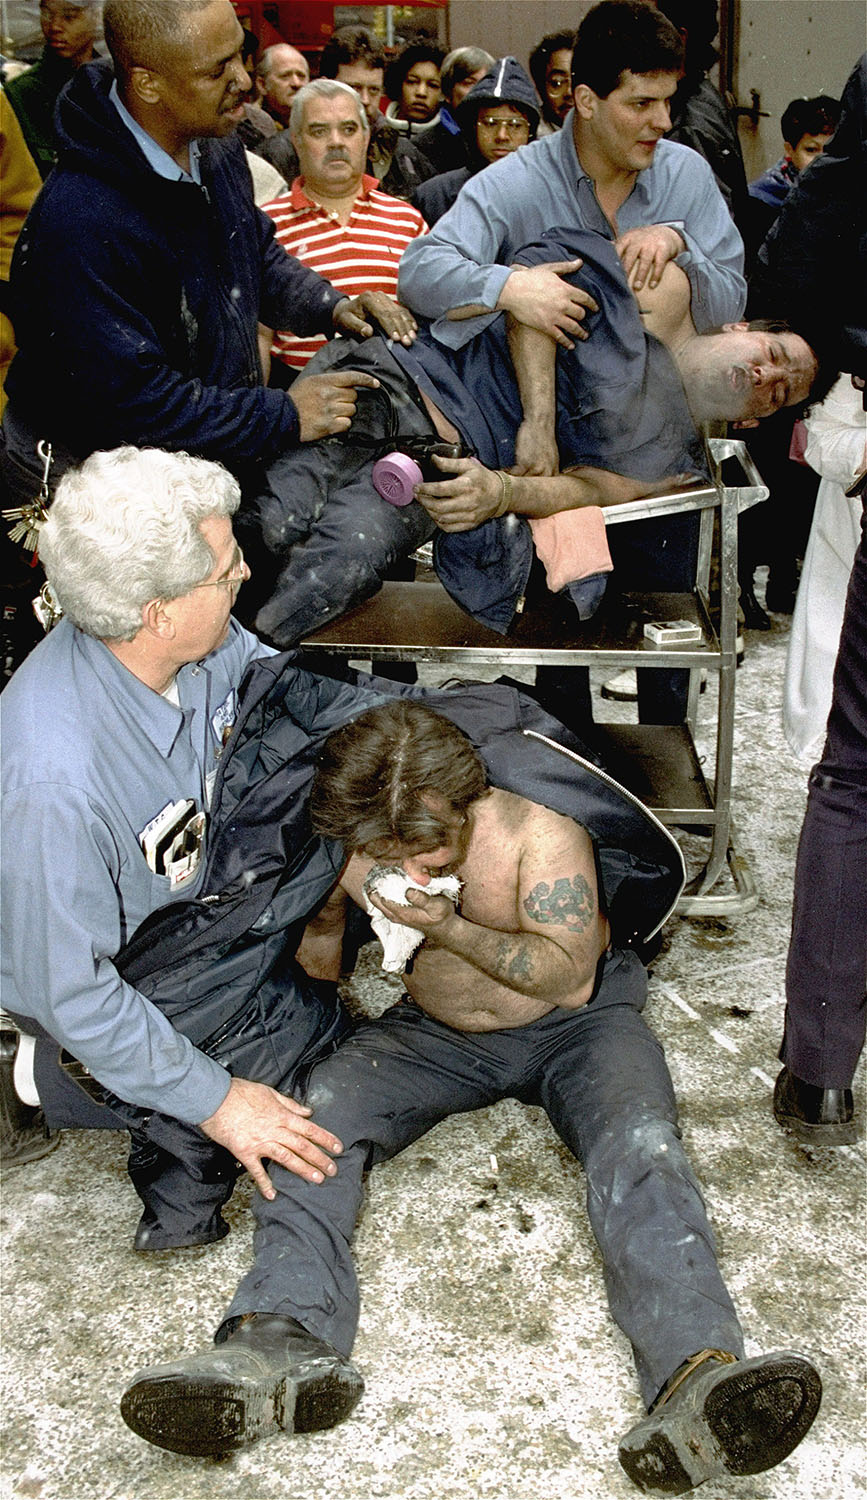 <div class='meta'><div class='origin-logo' data-origin='AP'></div><span class='caption-text' data-credit='AP Photo/Marty Lederhandler'>Victims of a fire at the World Trade Center in New York are treated at the scene after an explosion rocked the complex.</span></div>